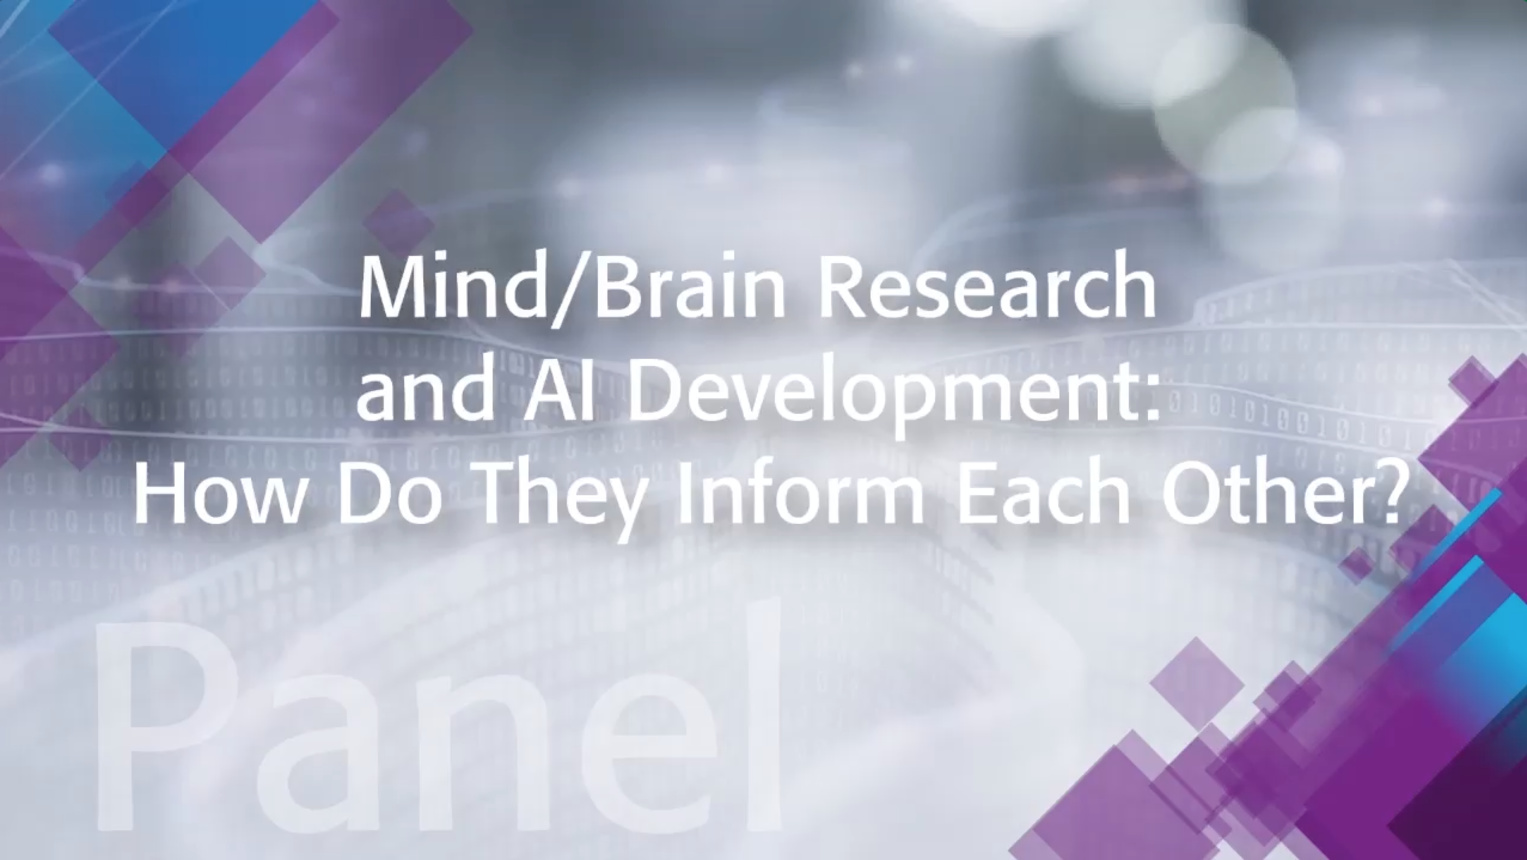 Mind/Brain Research and AI Development: How Do They Inform Each Other? - IEEE TechEthics Panel